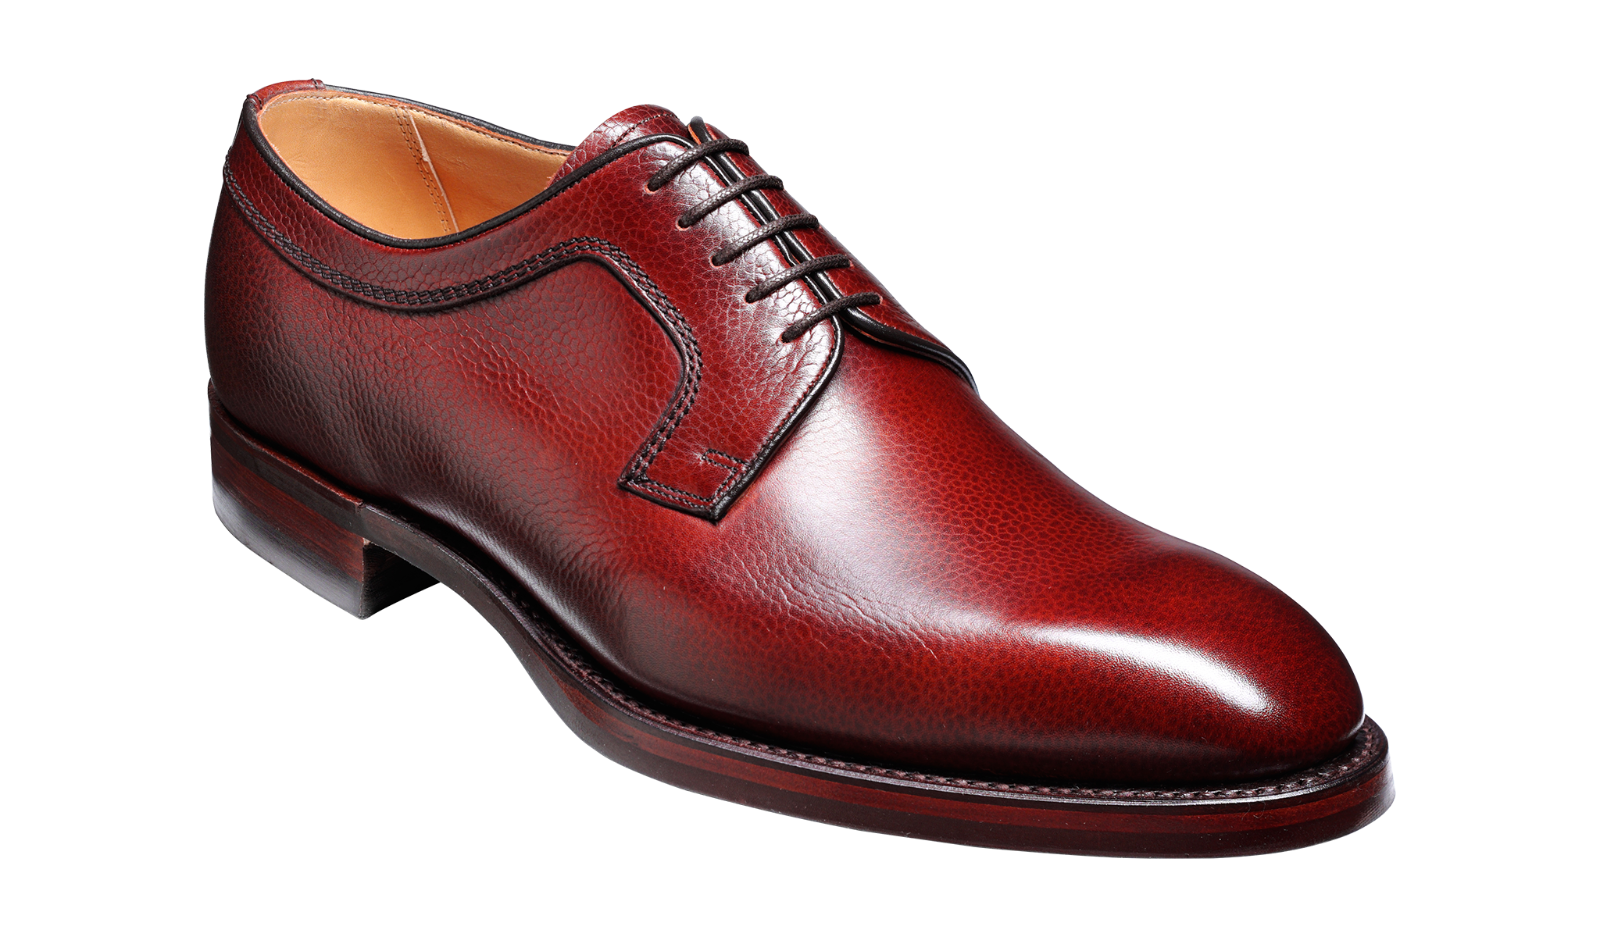 Skye Cherry Grain Derby Full Leather schuhe with durable Dainite sole by Barker